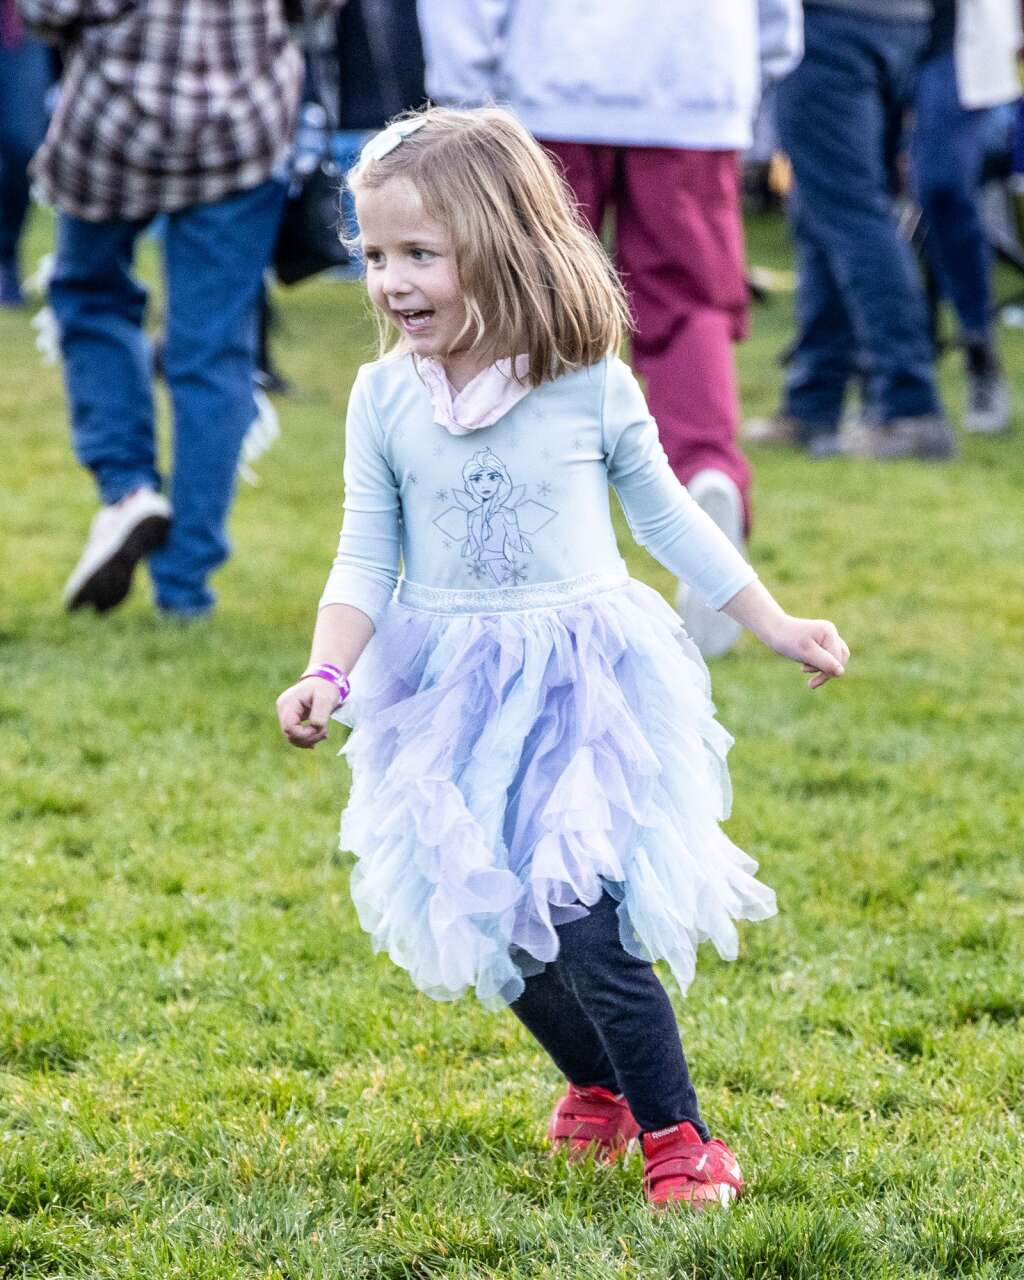 A young girl dances during Jazz Aspen Snowmass on Friday, Sept. 3, 2021, in Snowmass Village. Photo by Austin Colbert/The Aspen Times.